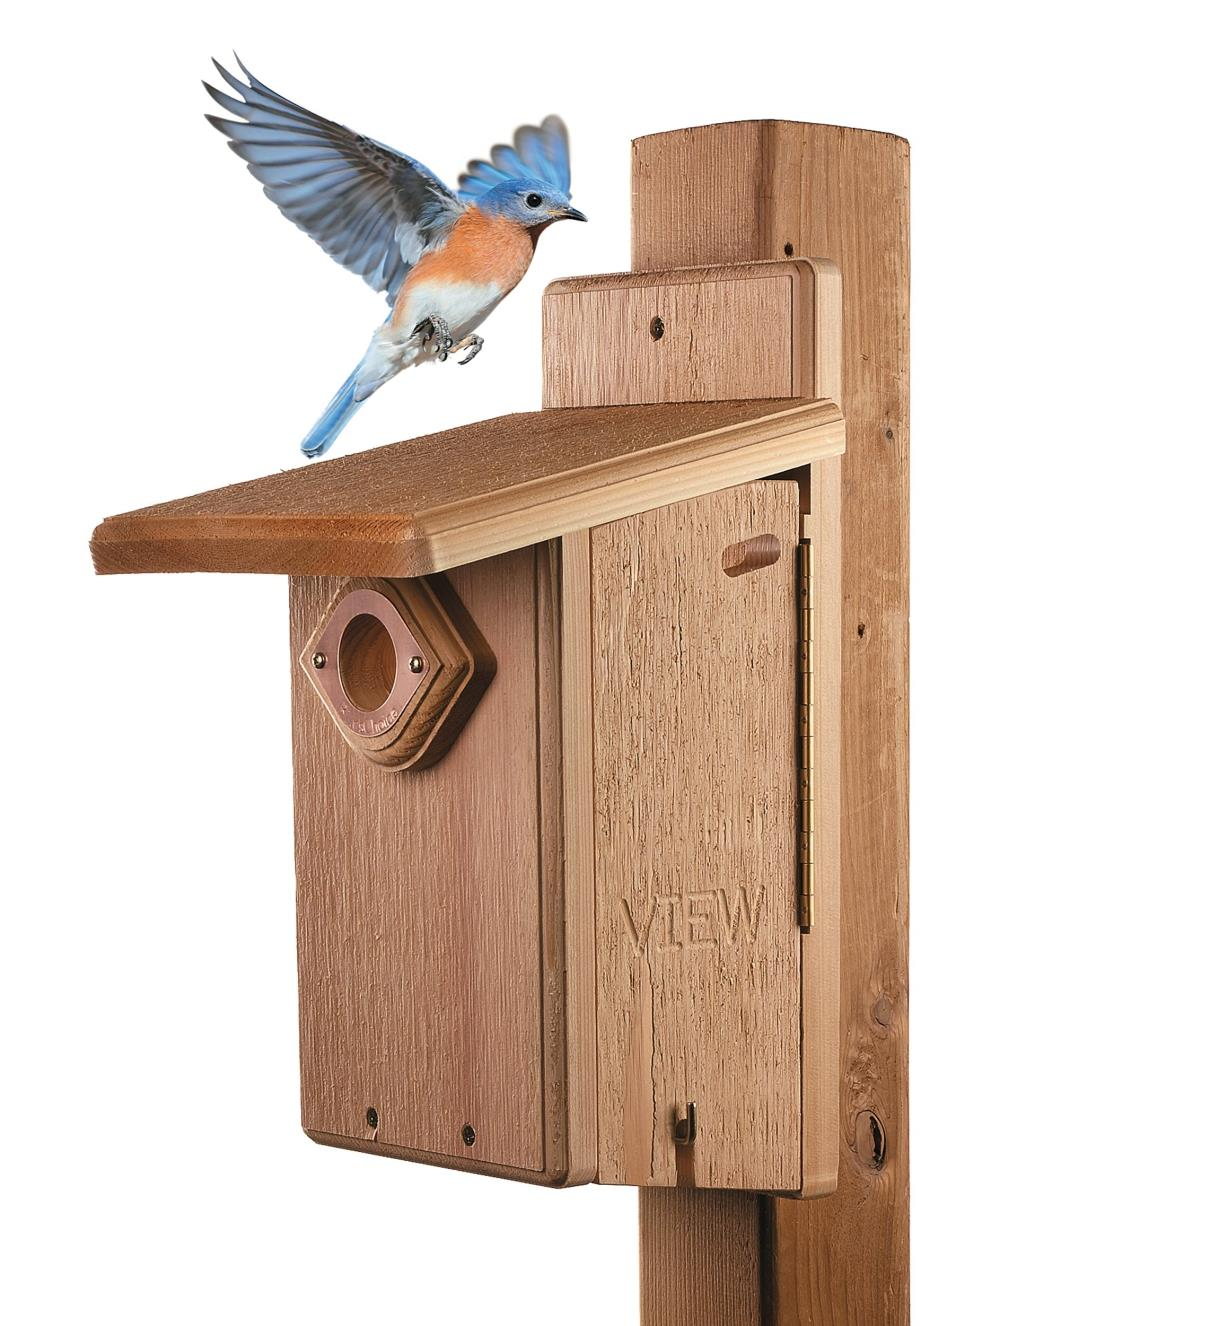 A bird landing on a Cedar Bluebird House